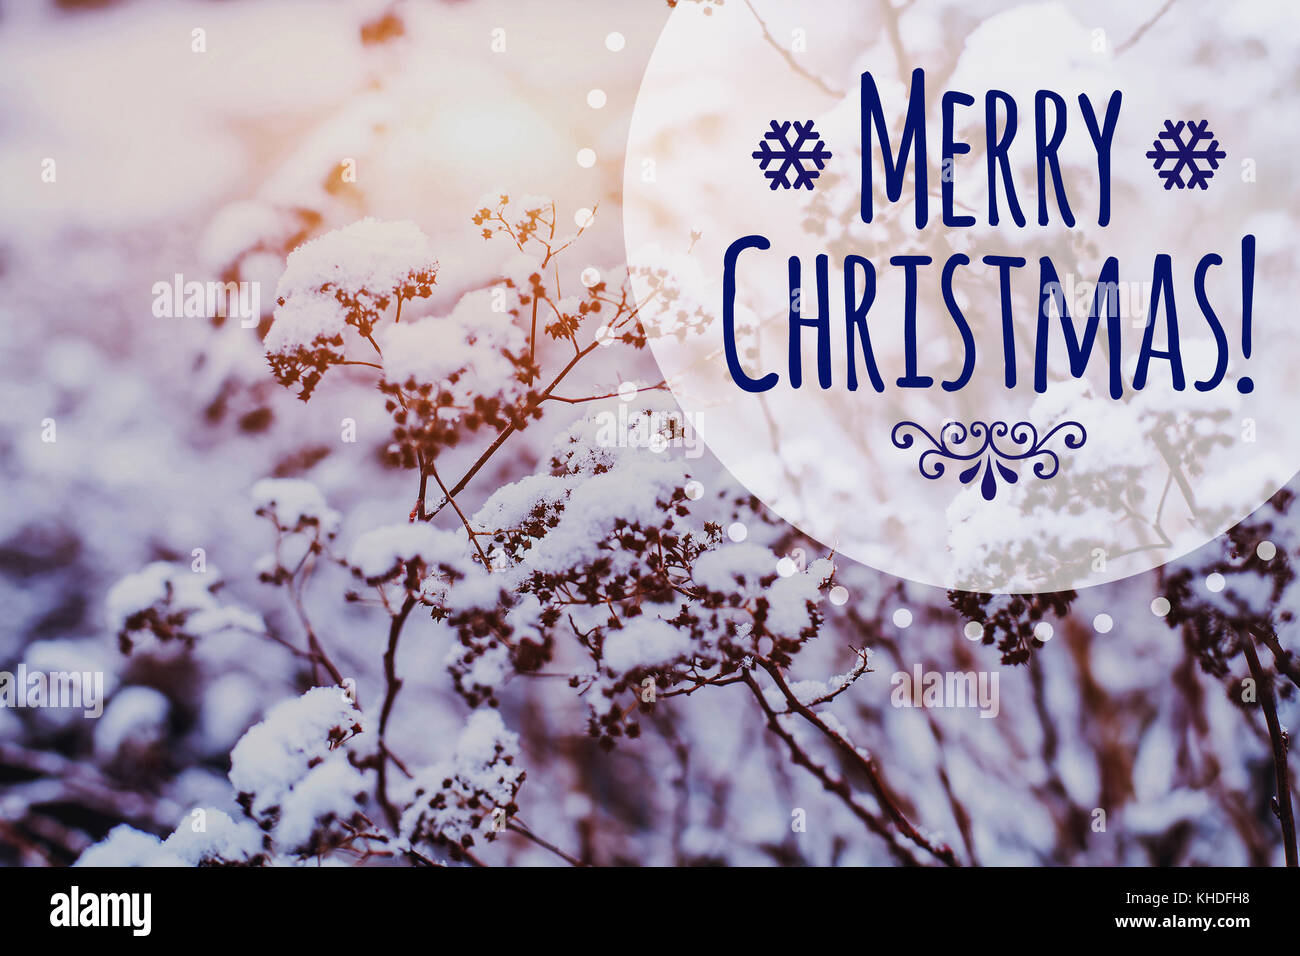 Merry Christmas greeting card on beautiful winter frozen landscape background with copy space - Stock Image